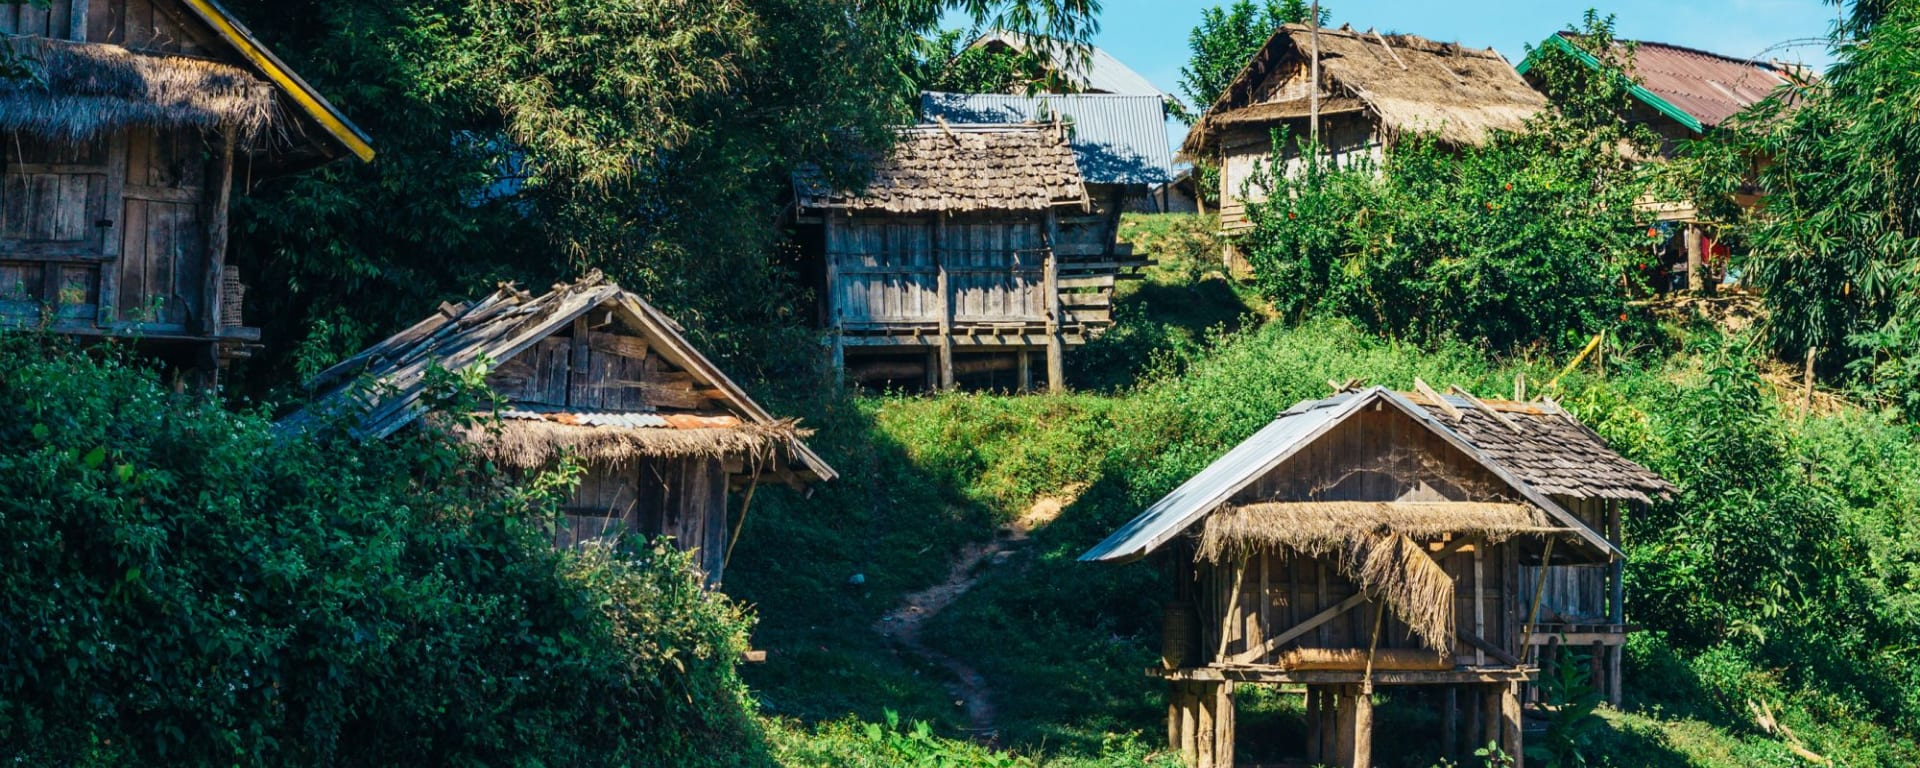 Trekking vers une tribu montagnarde de Luang Prabang: Laos typical rural wooden houses